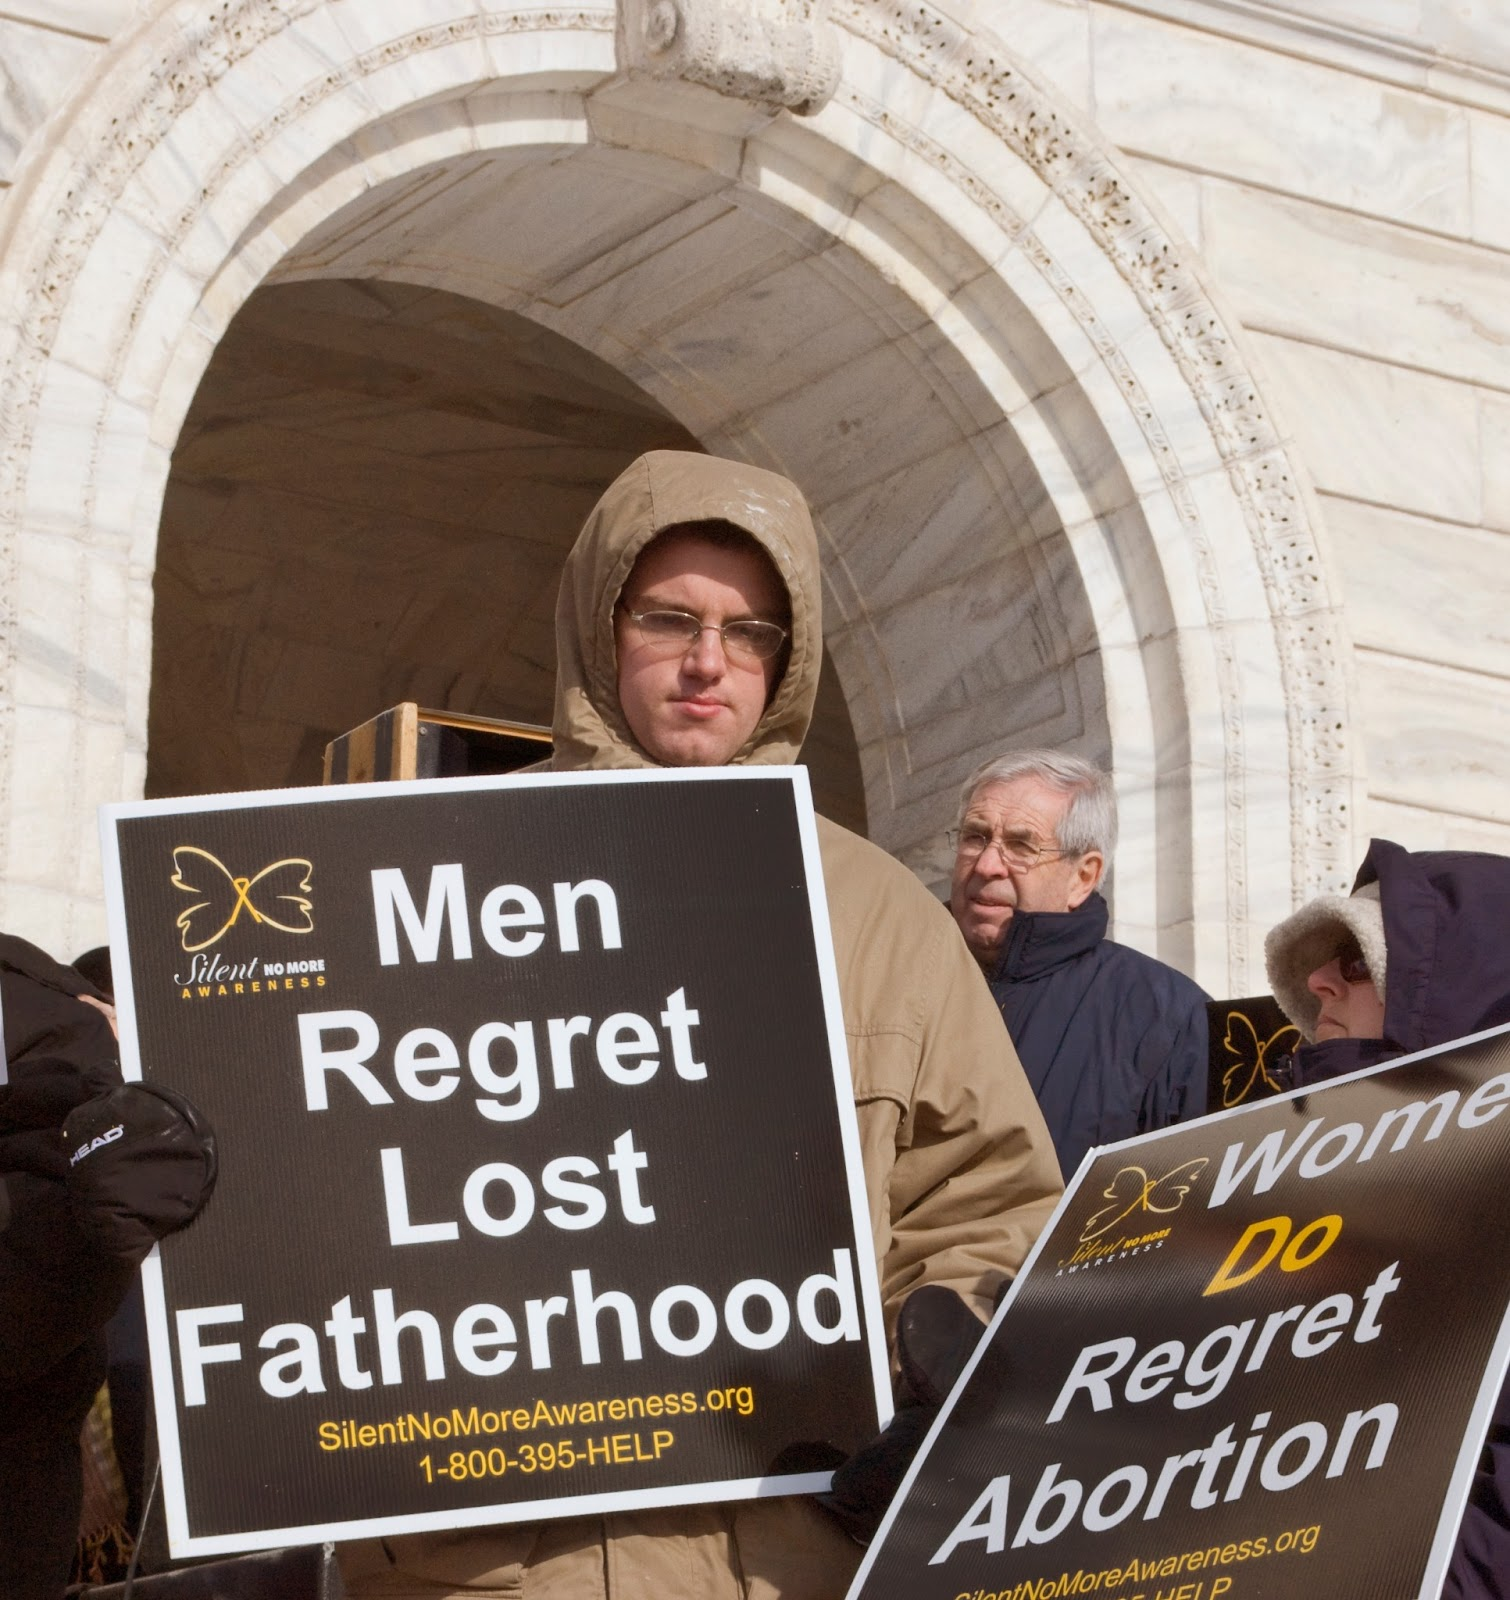 effects of abortion on the father Danforth (1976), the court dismissed the validity of a father's involvement in his   curiously, gradual acceptance of the mental health risks of abortion for men is.